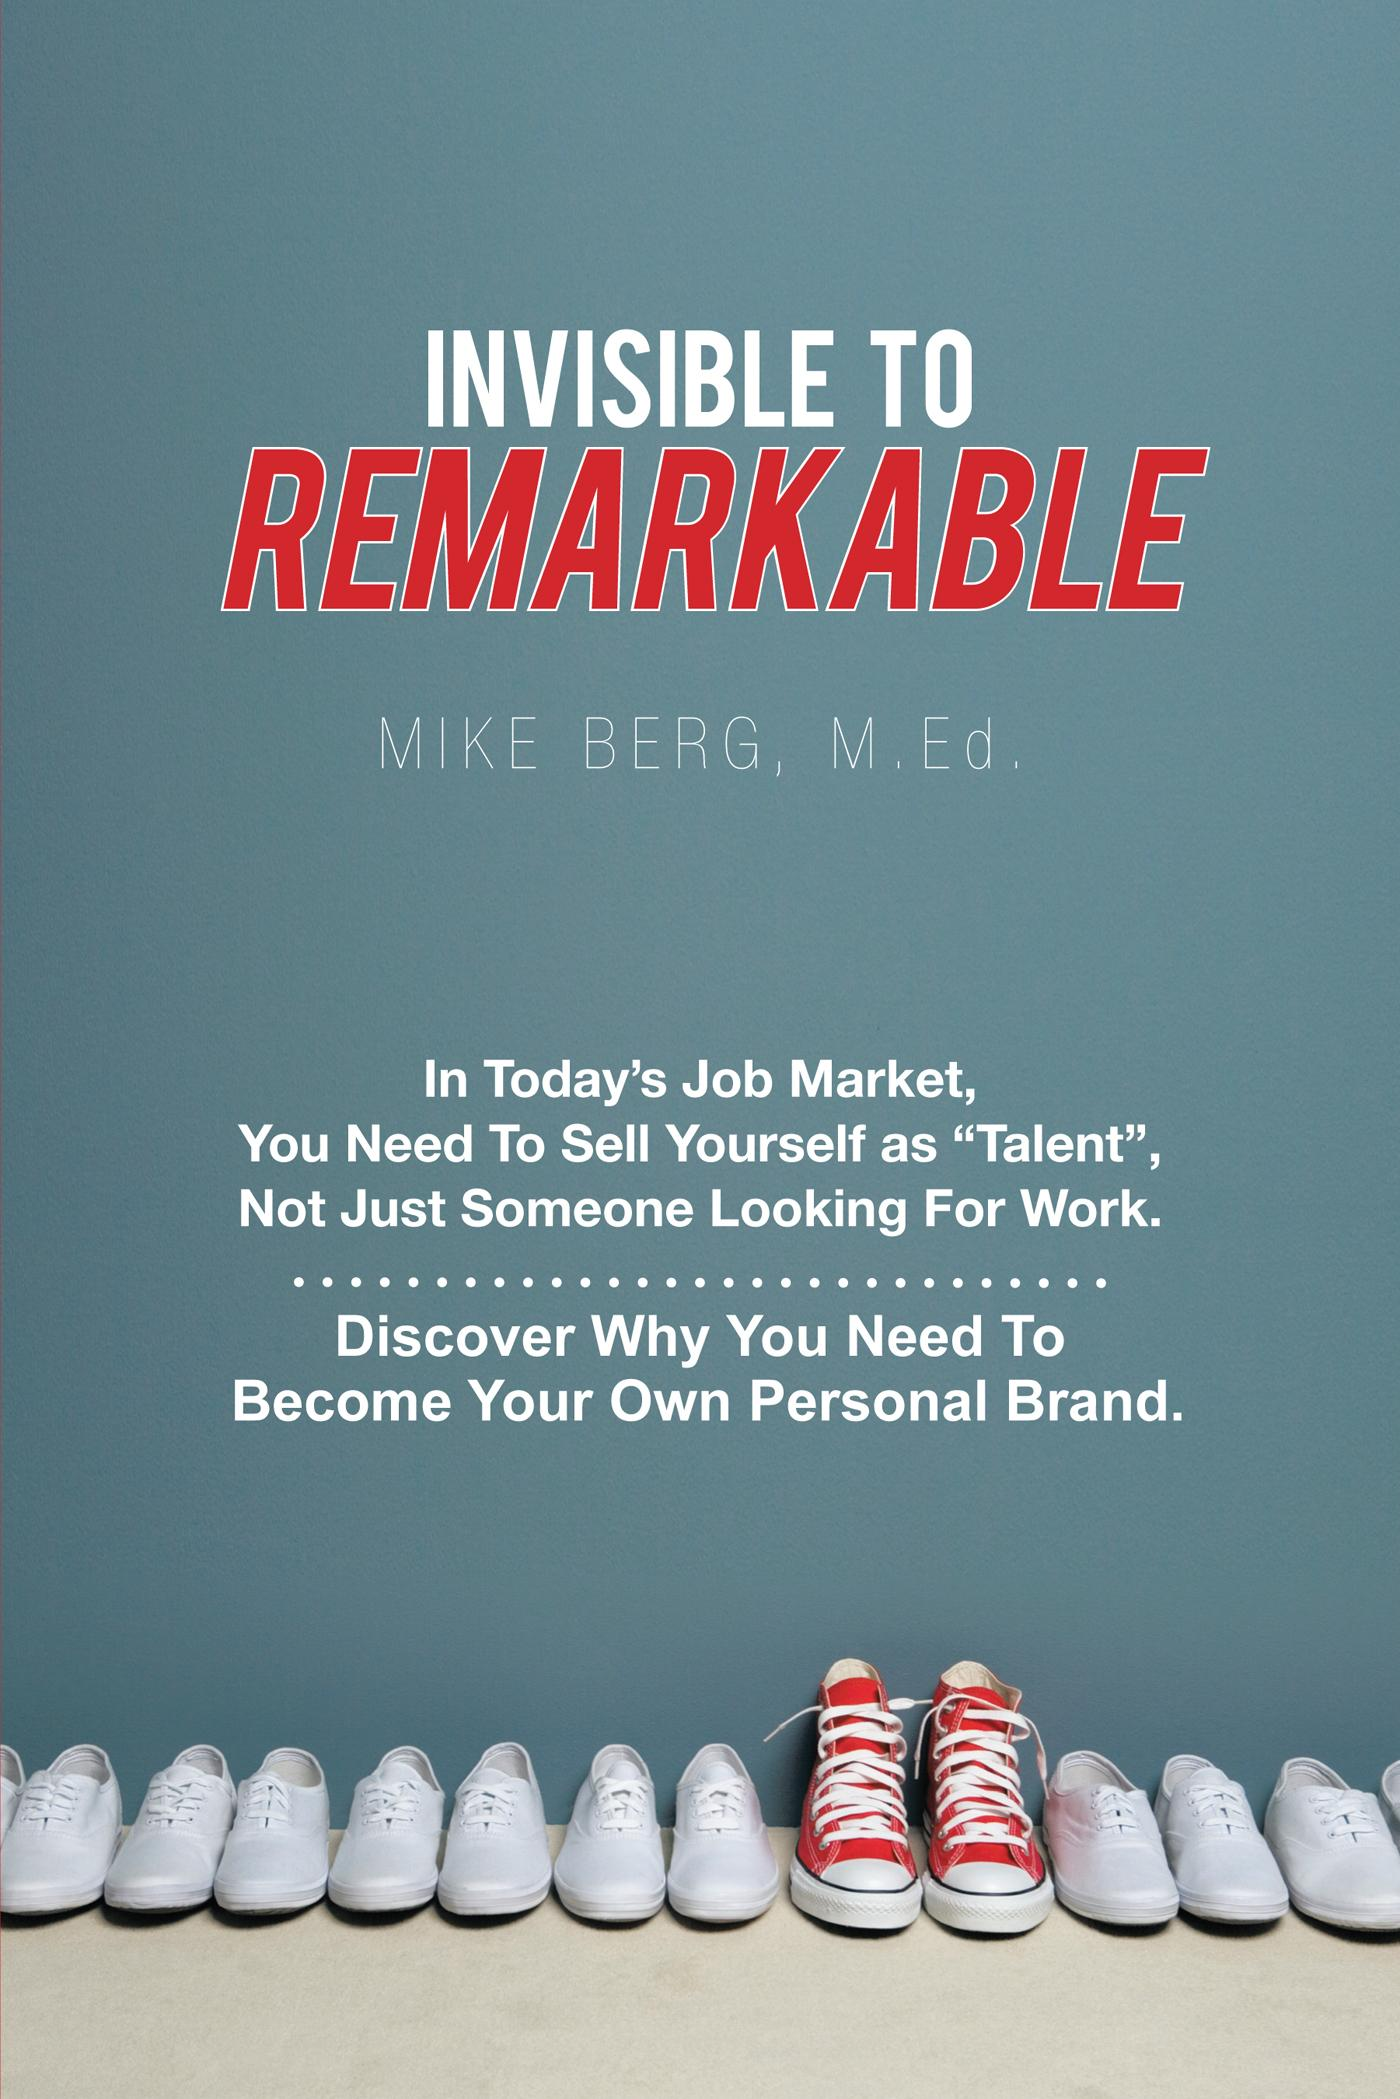 Invisible to Remarkable: In Today's Job Market, You Need To Sell Yourself as